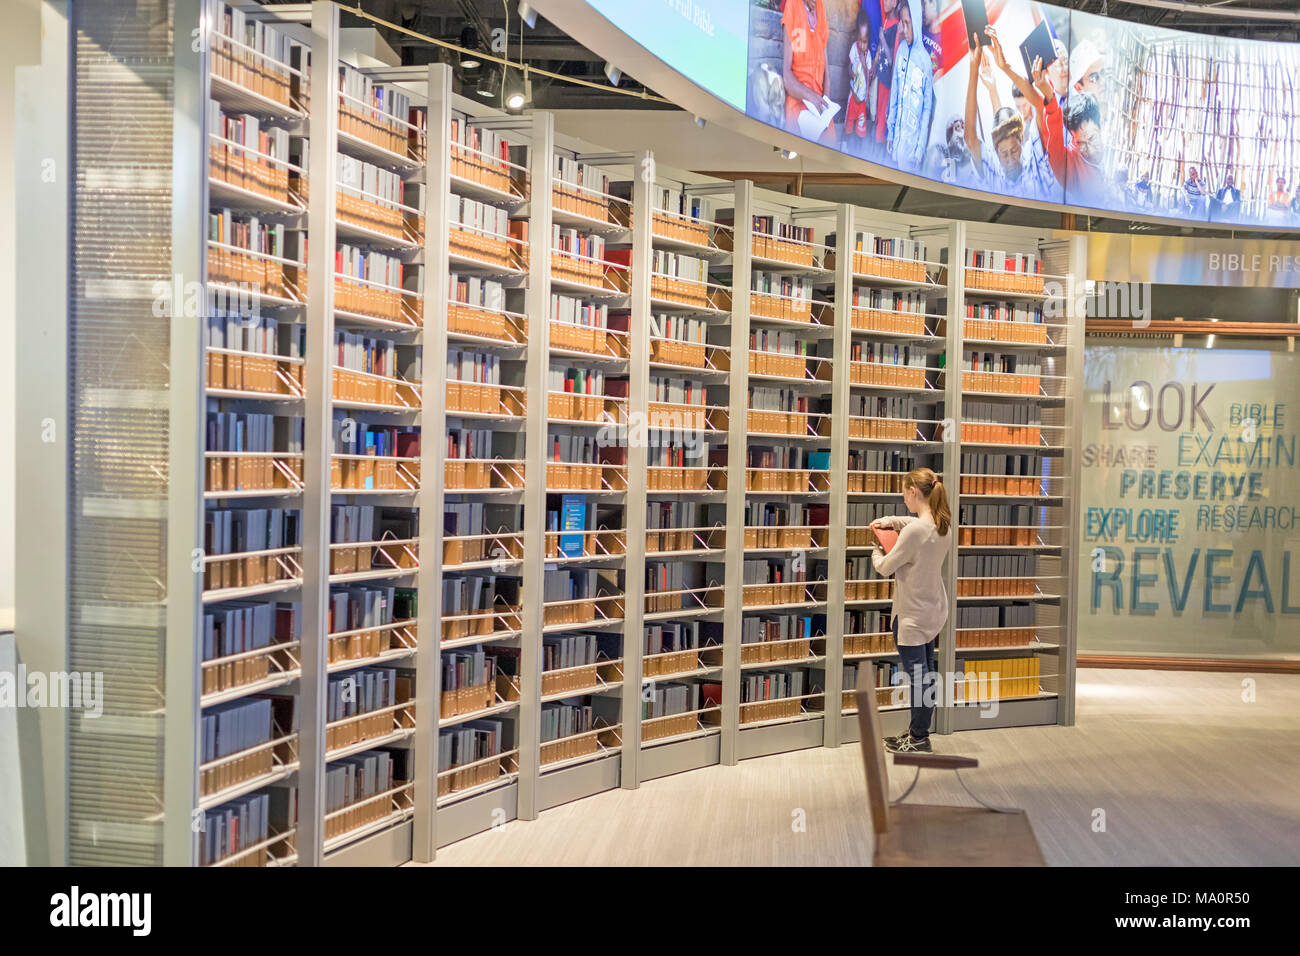 Washington, DC - The Museum of the Bible includes a room displaying Bibles that have been translated into hundreds of languages.Stock Photo